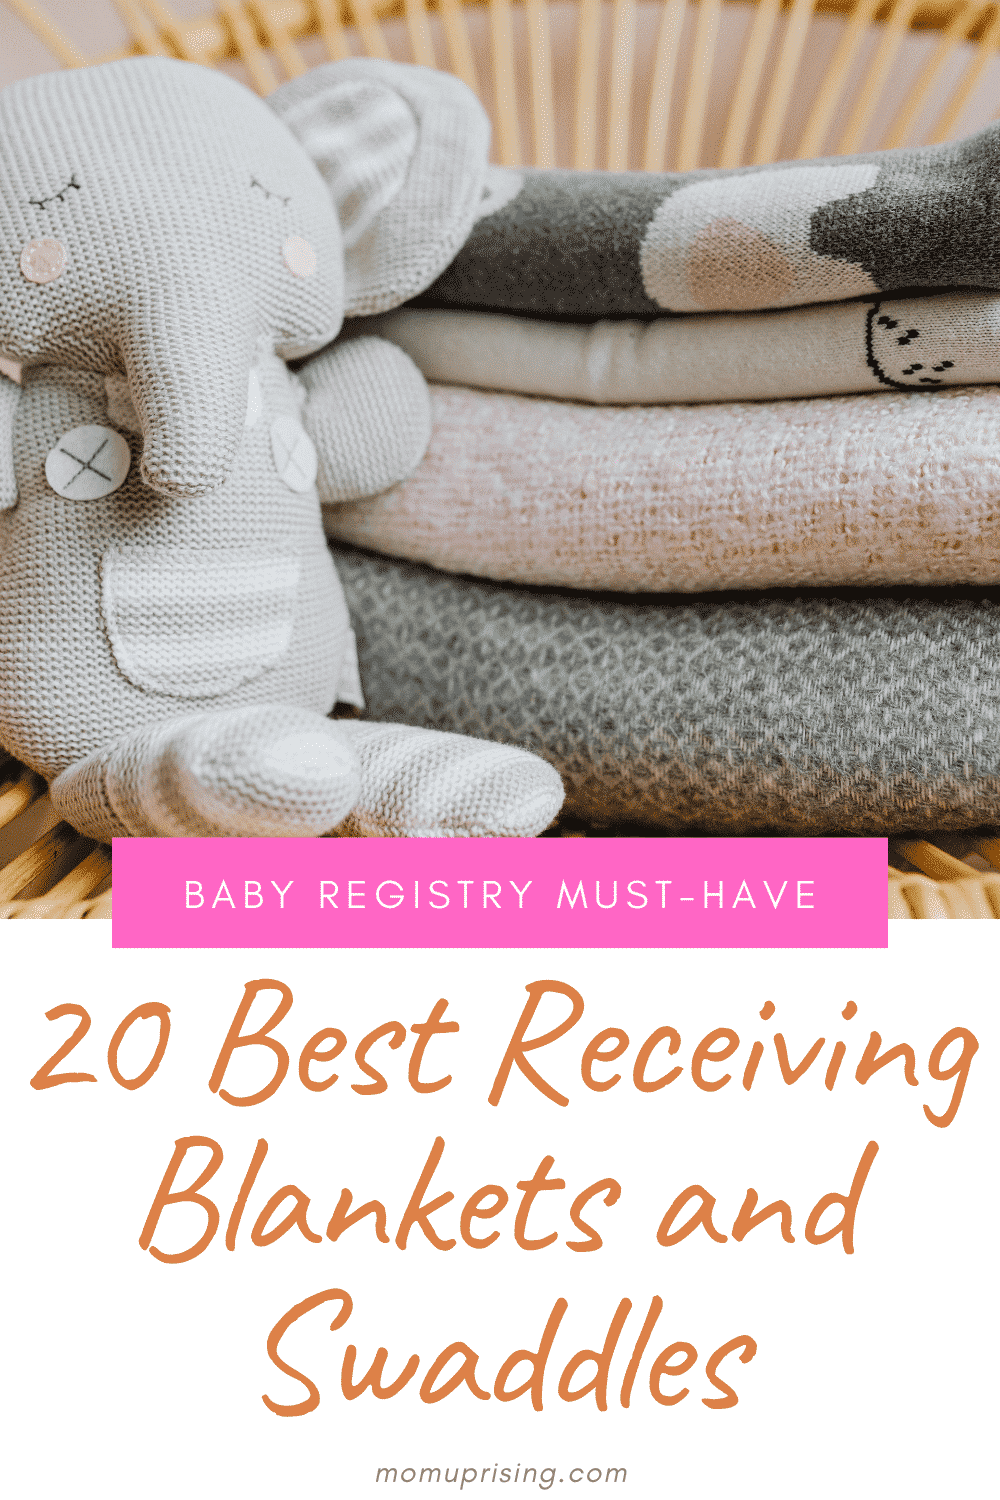 The Best Baby Receiving Blankets: Why You Need Them